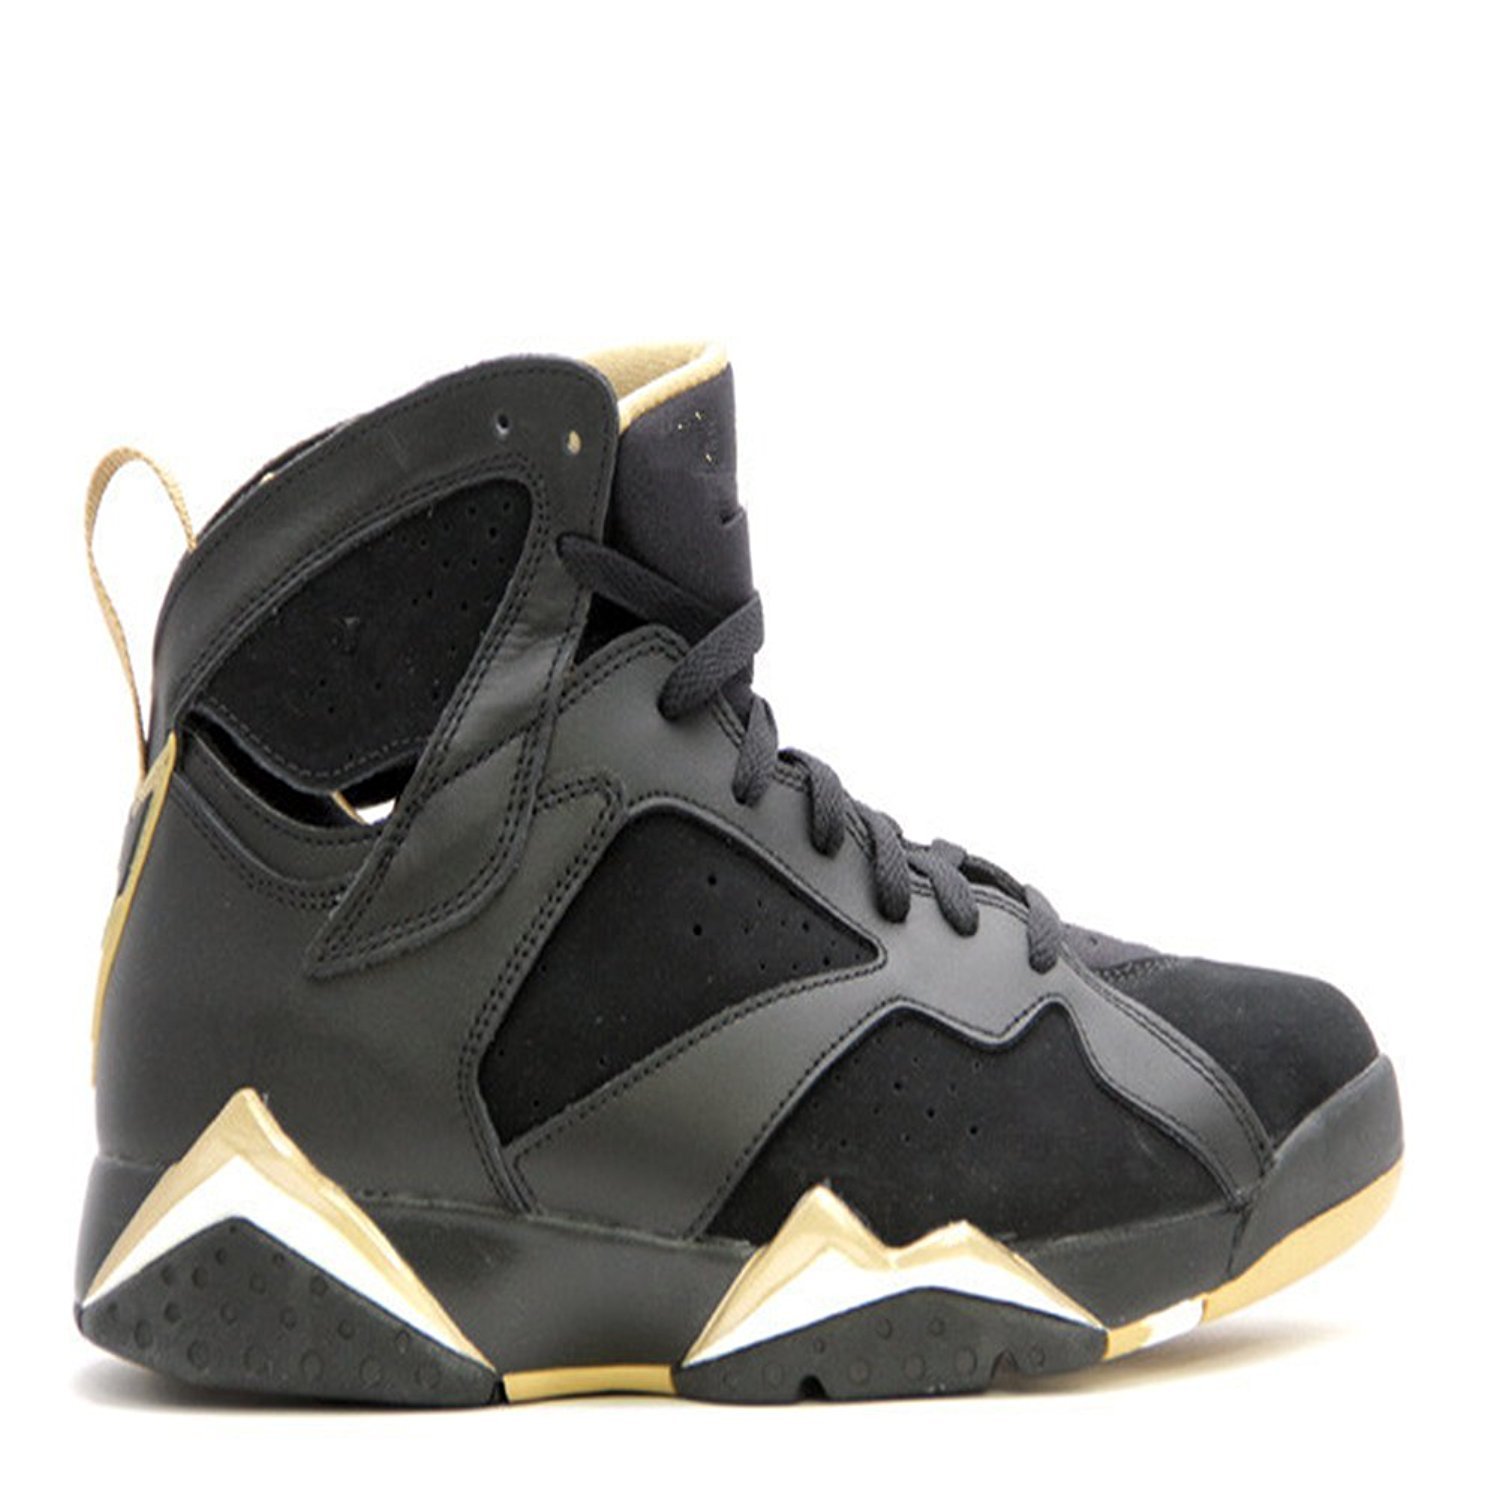 factory price 4f3c7 65974 Get Quotations · air jordan 7 retro golden moments package black metallic  gold white basketball shoes